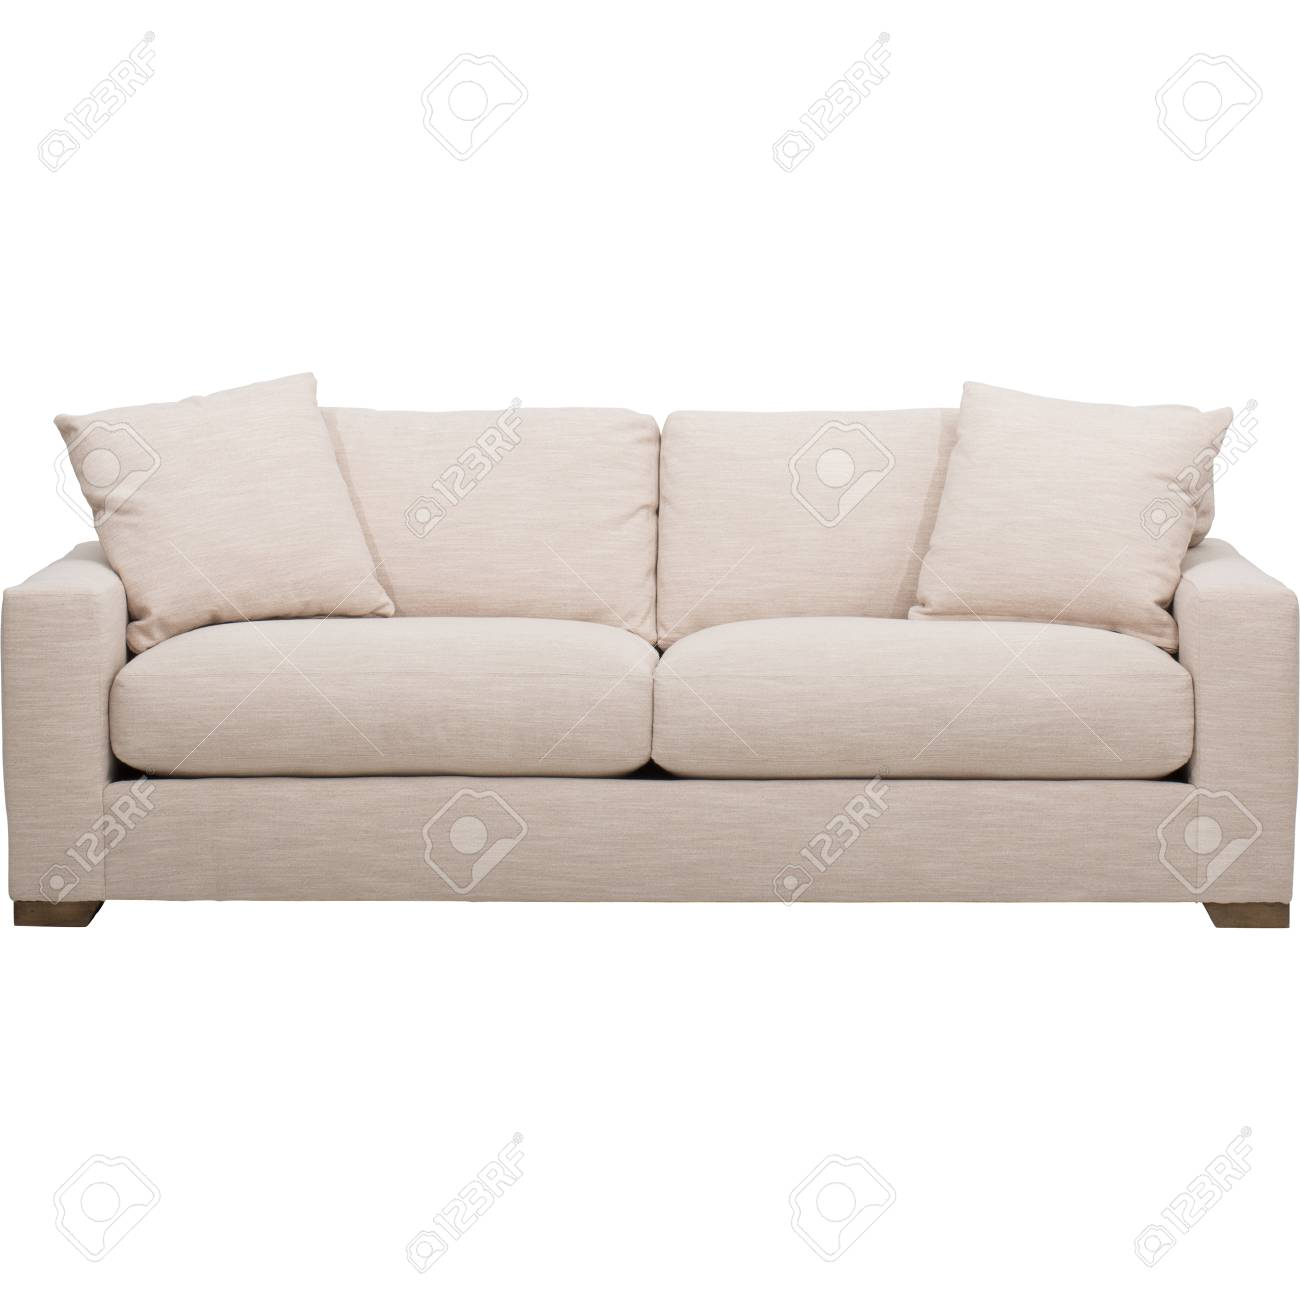 Southern Furniture Bradley Sofa Stock Photo Picture And Royalty